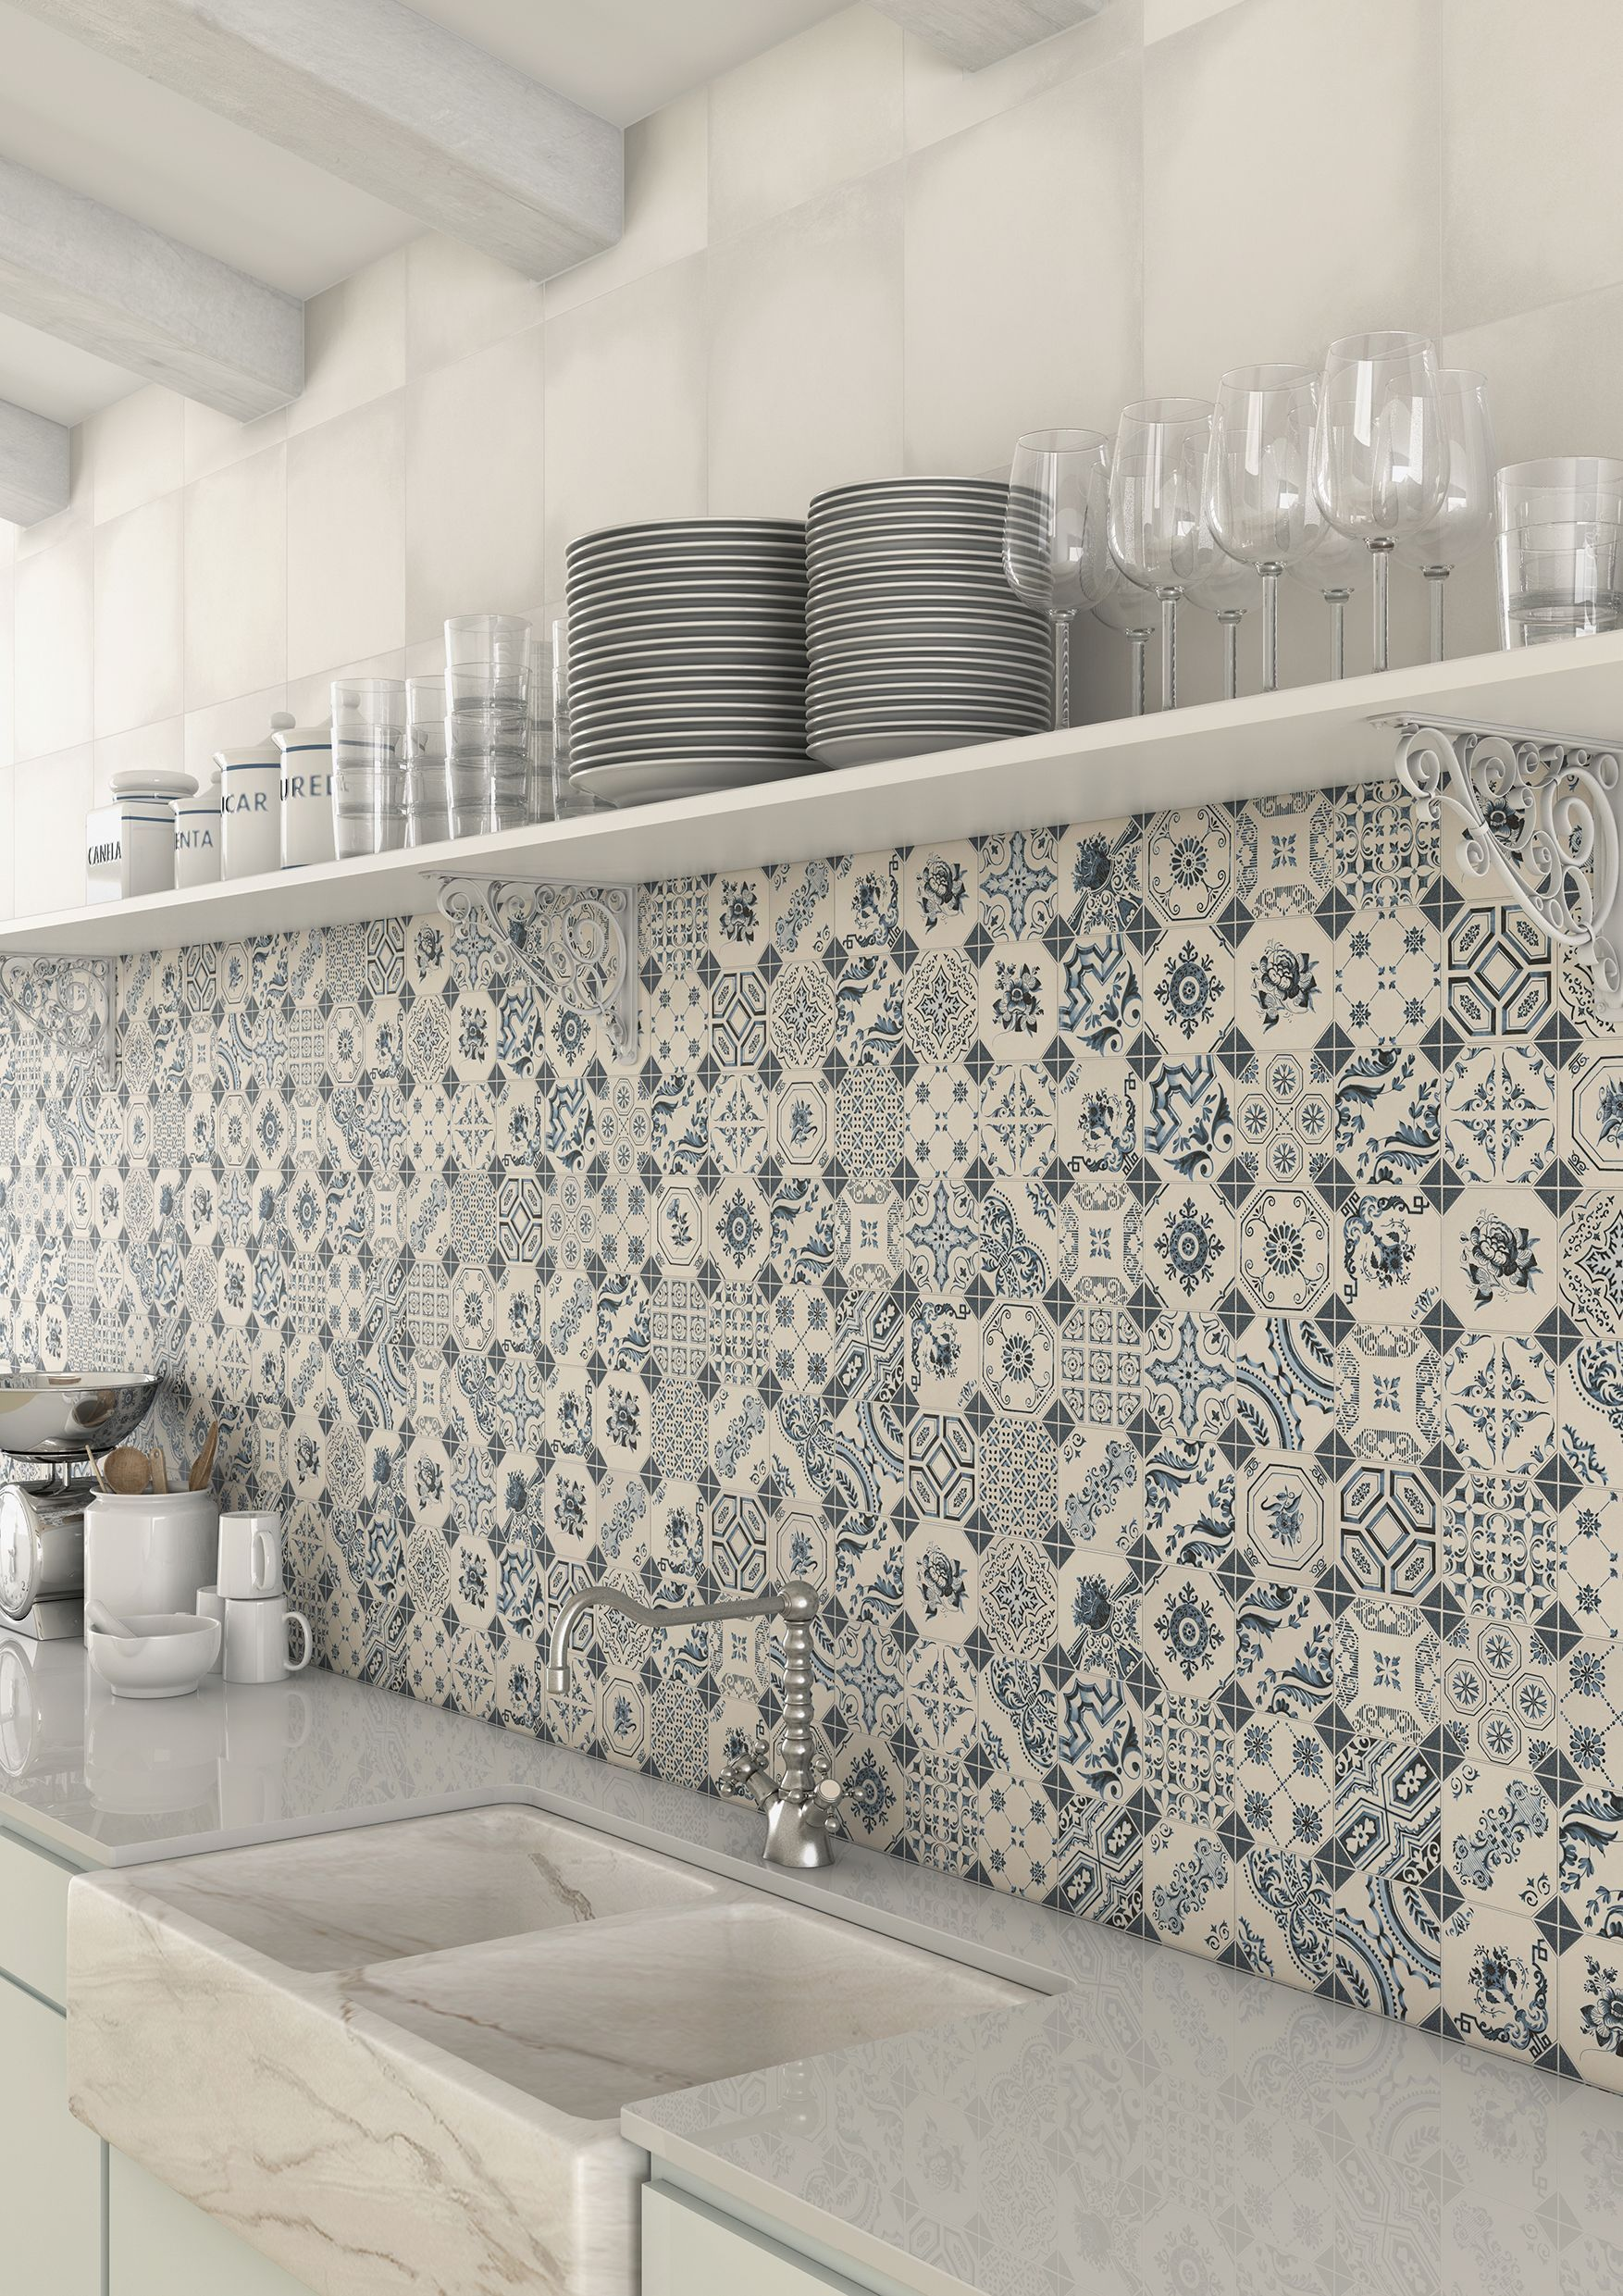 How To Cut Decorative Tile Portugal Retro  Kitchens Portugal And Monochrome Interior